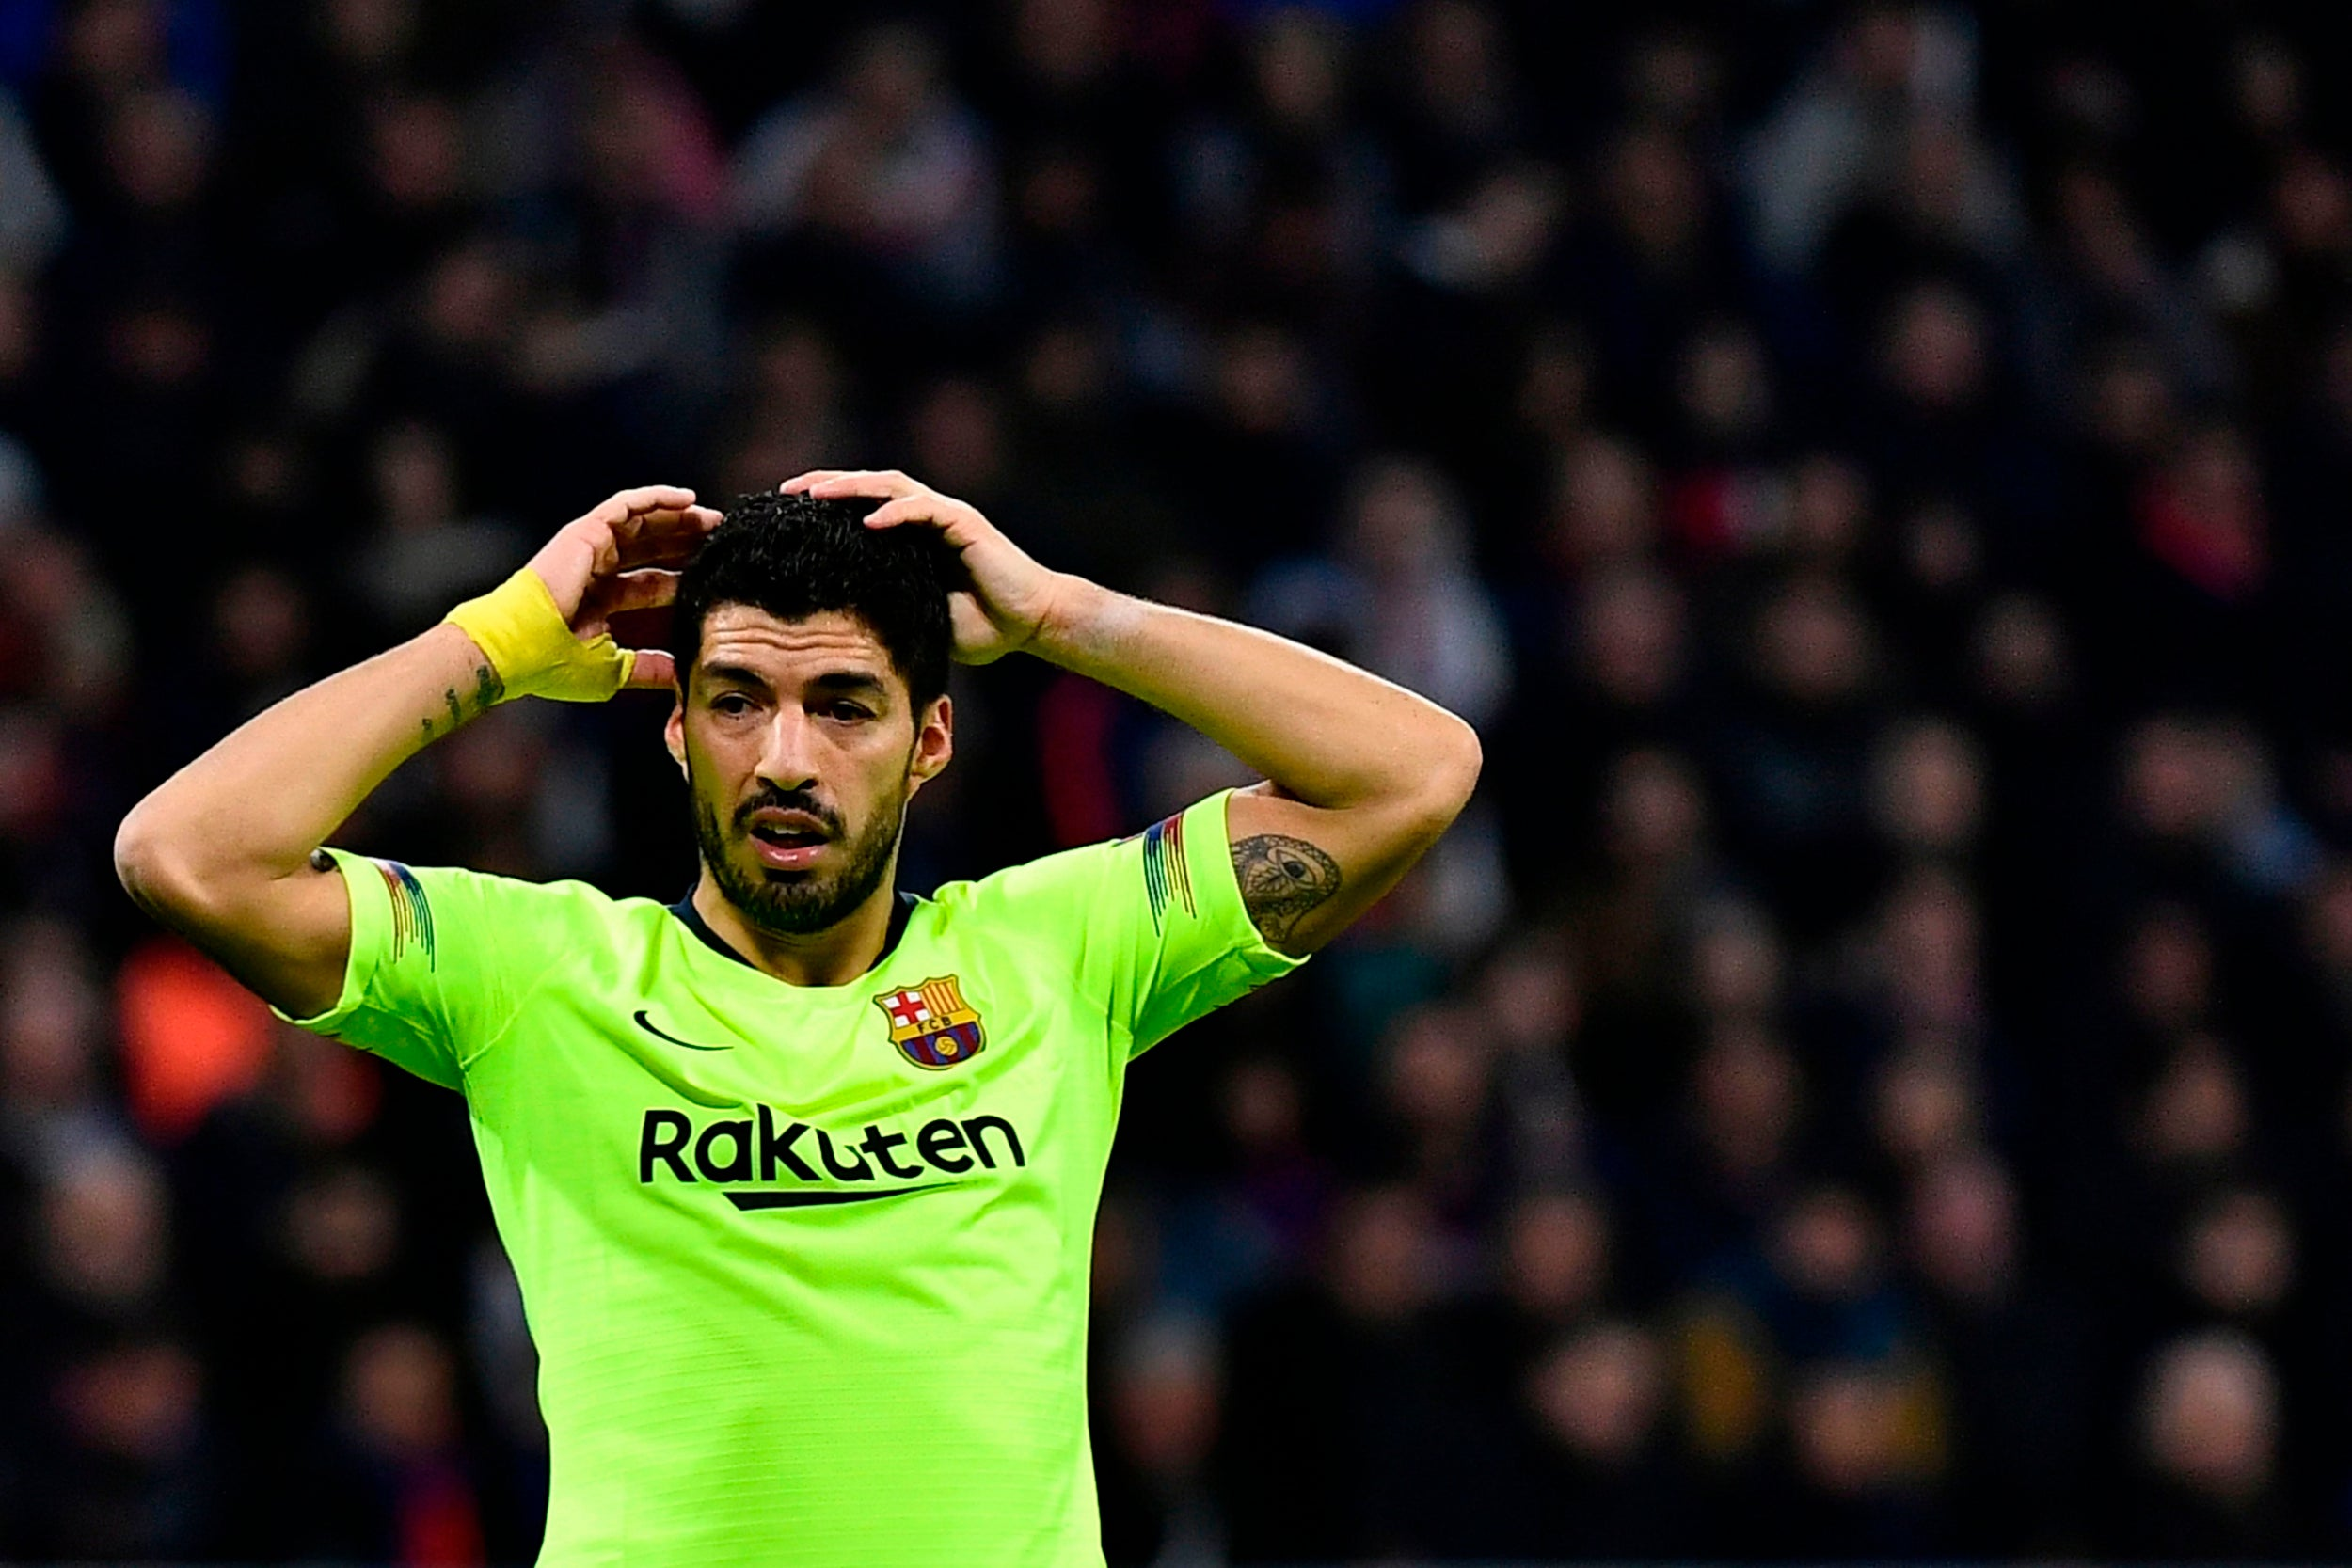 Lyon 0-0 Barcelona – player ratings from the Champions League tie as Luis Suarez struggles